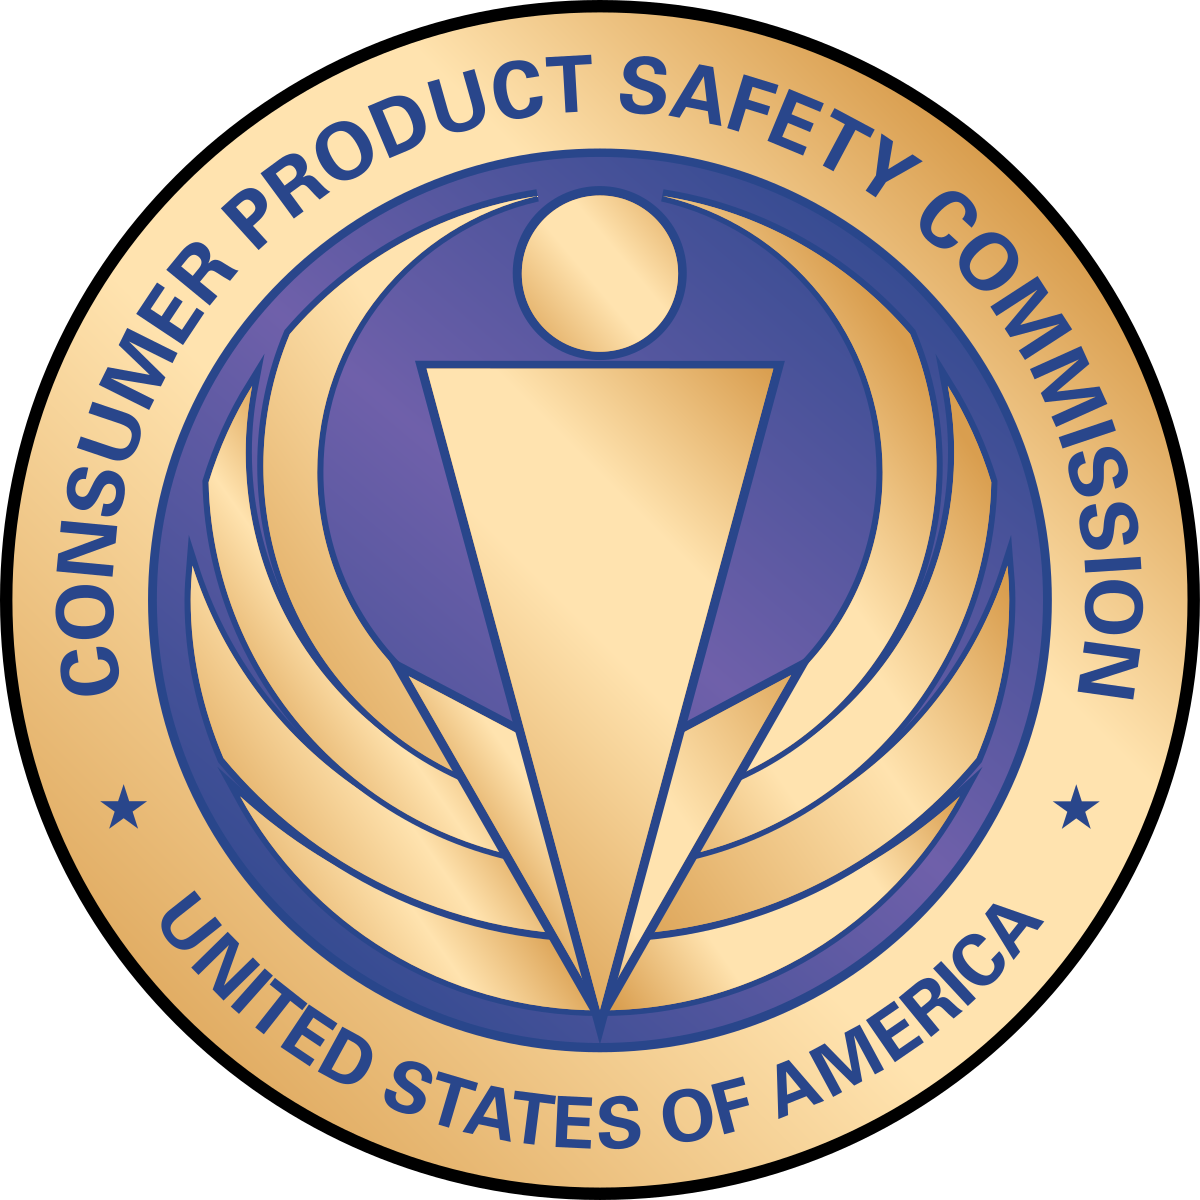 Consumer Product Safety Commission agency seal